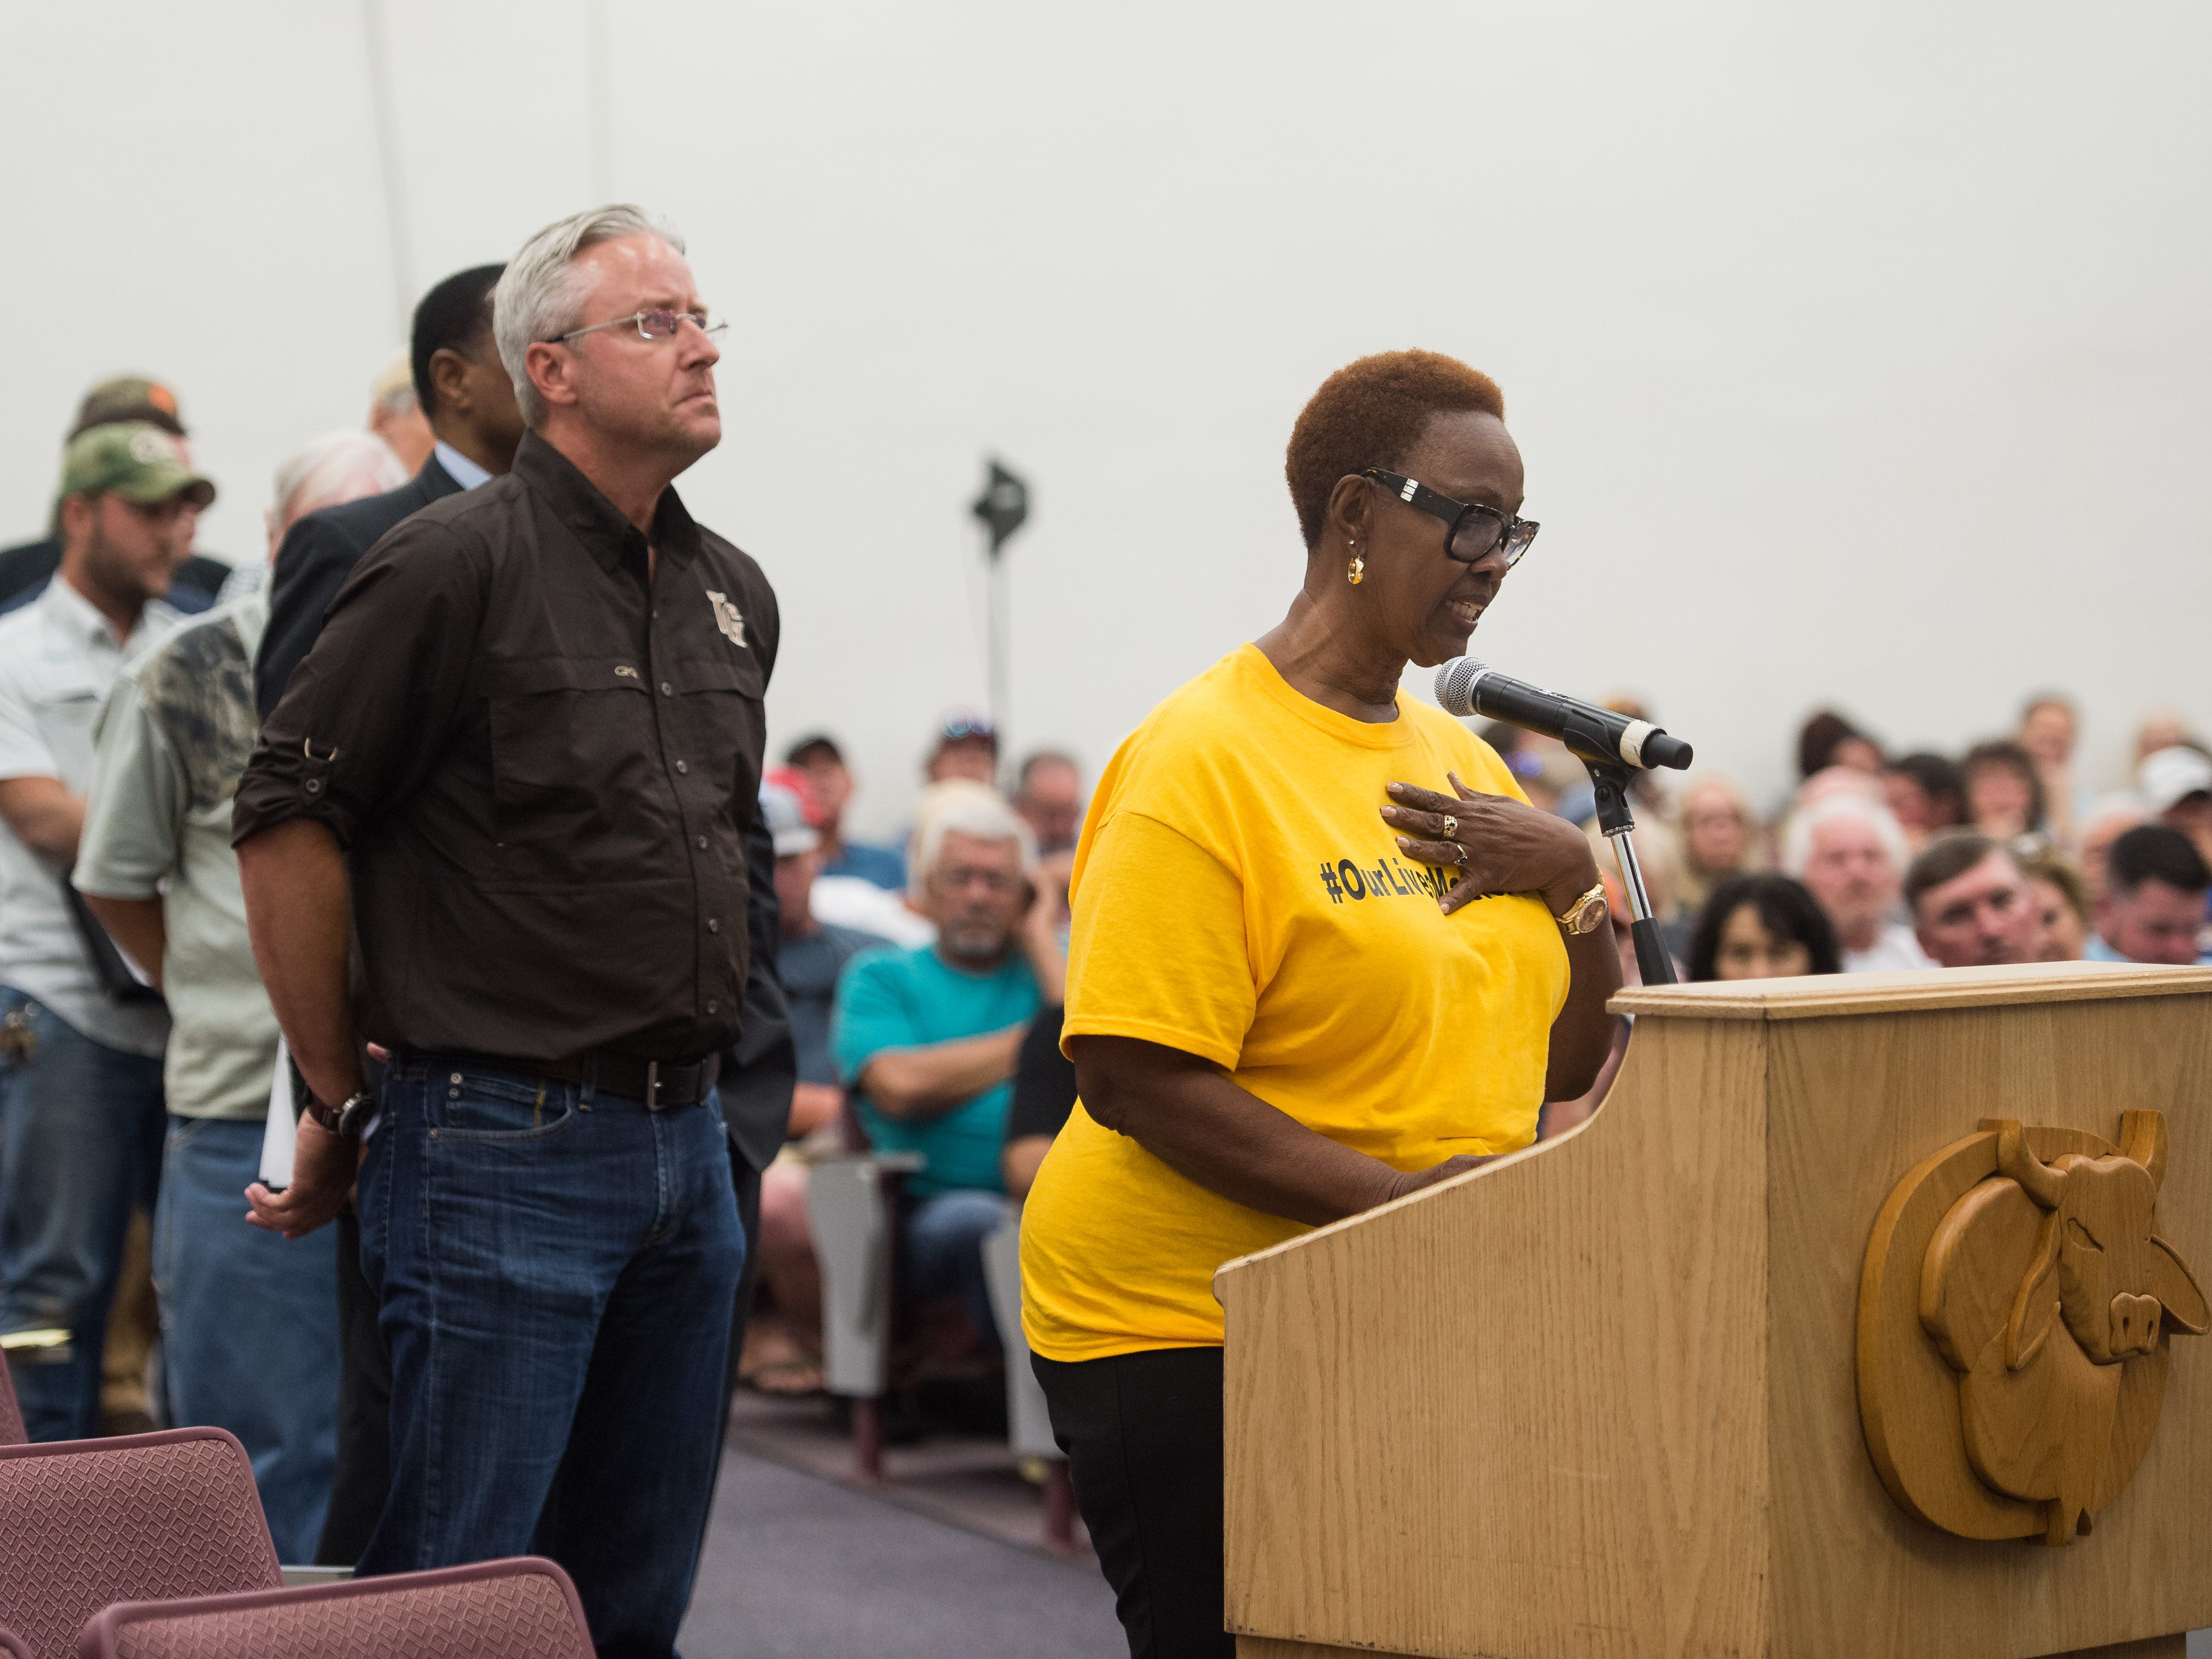 """Janet Taylor, a former Hendry County commissioner and head of Glades Lives Matter, speaks during a joint commission meeting at Okeechobee High School on Tuesday, May 7, 2019, followed by Martin County resident and former South Florida Water Management District governing board member Brandon Tucker. Taylor said """"we can solve these problems as brothers and sisters committed to this common cause, but we cannot solve these problems without a little understanding from people in these coastal ivory towers."""" County commissioners from Martin, Palm Beach, Glades, Hendry and Okeechobee attended the meeting, where stakeholders voiced their concerns following statements from the Army Corps of Engineers and Rep. Brian Mast's office."""